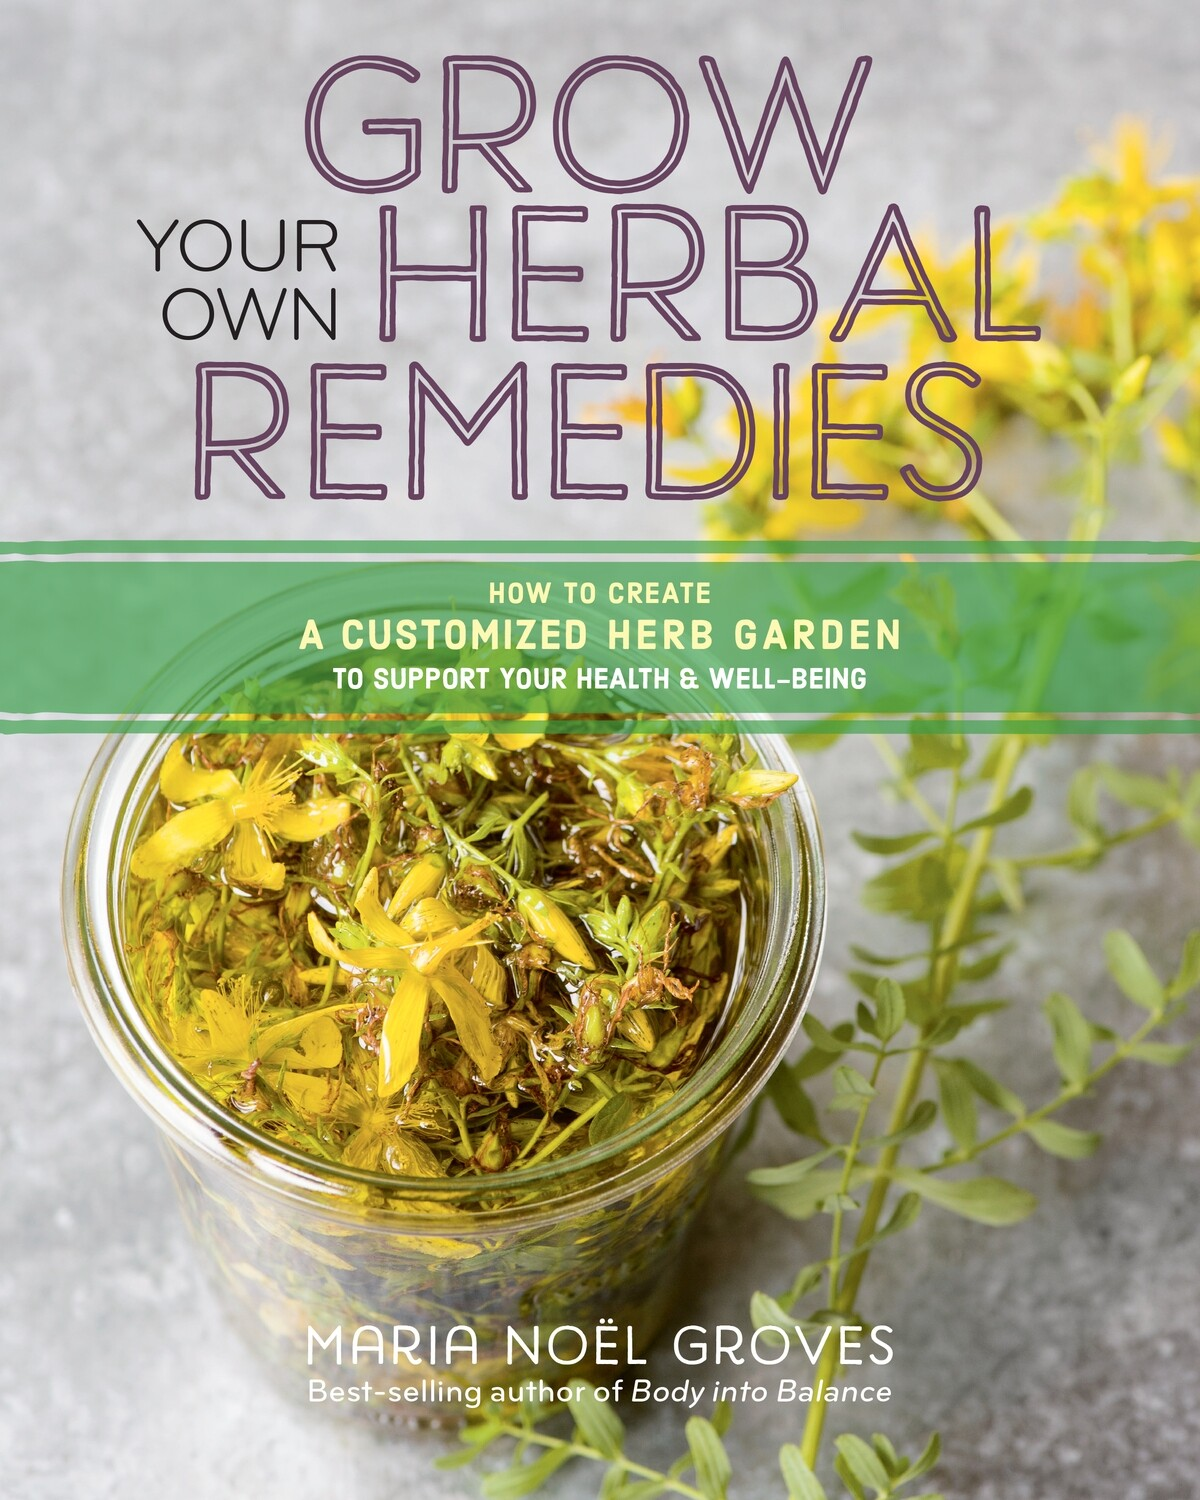 Grow Your Own Herbal Remedies Book